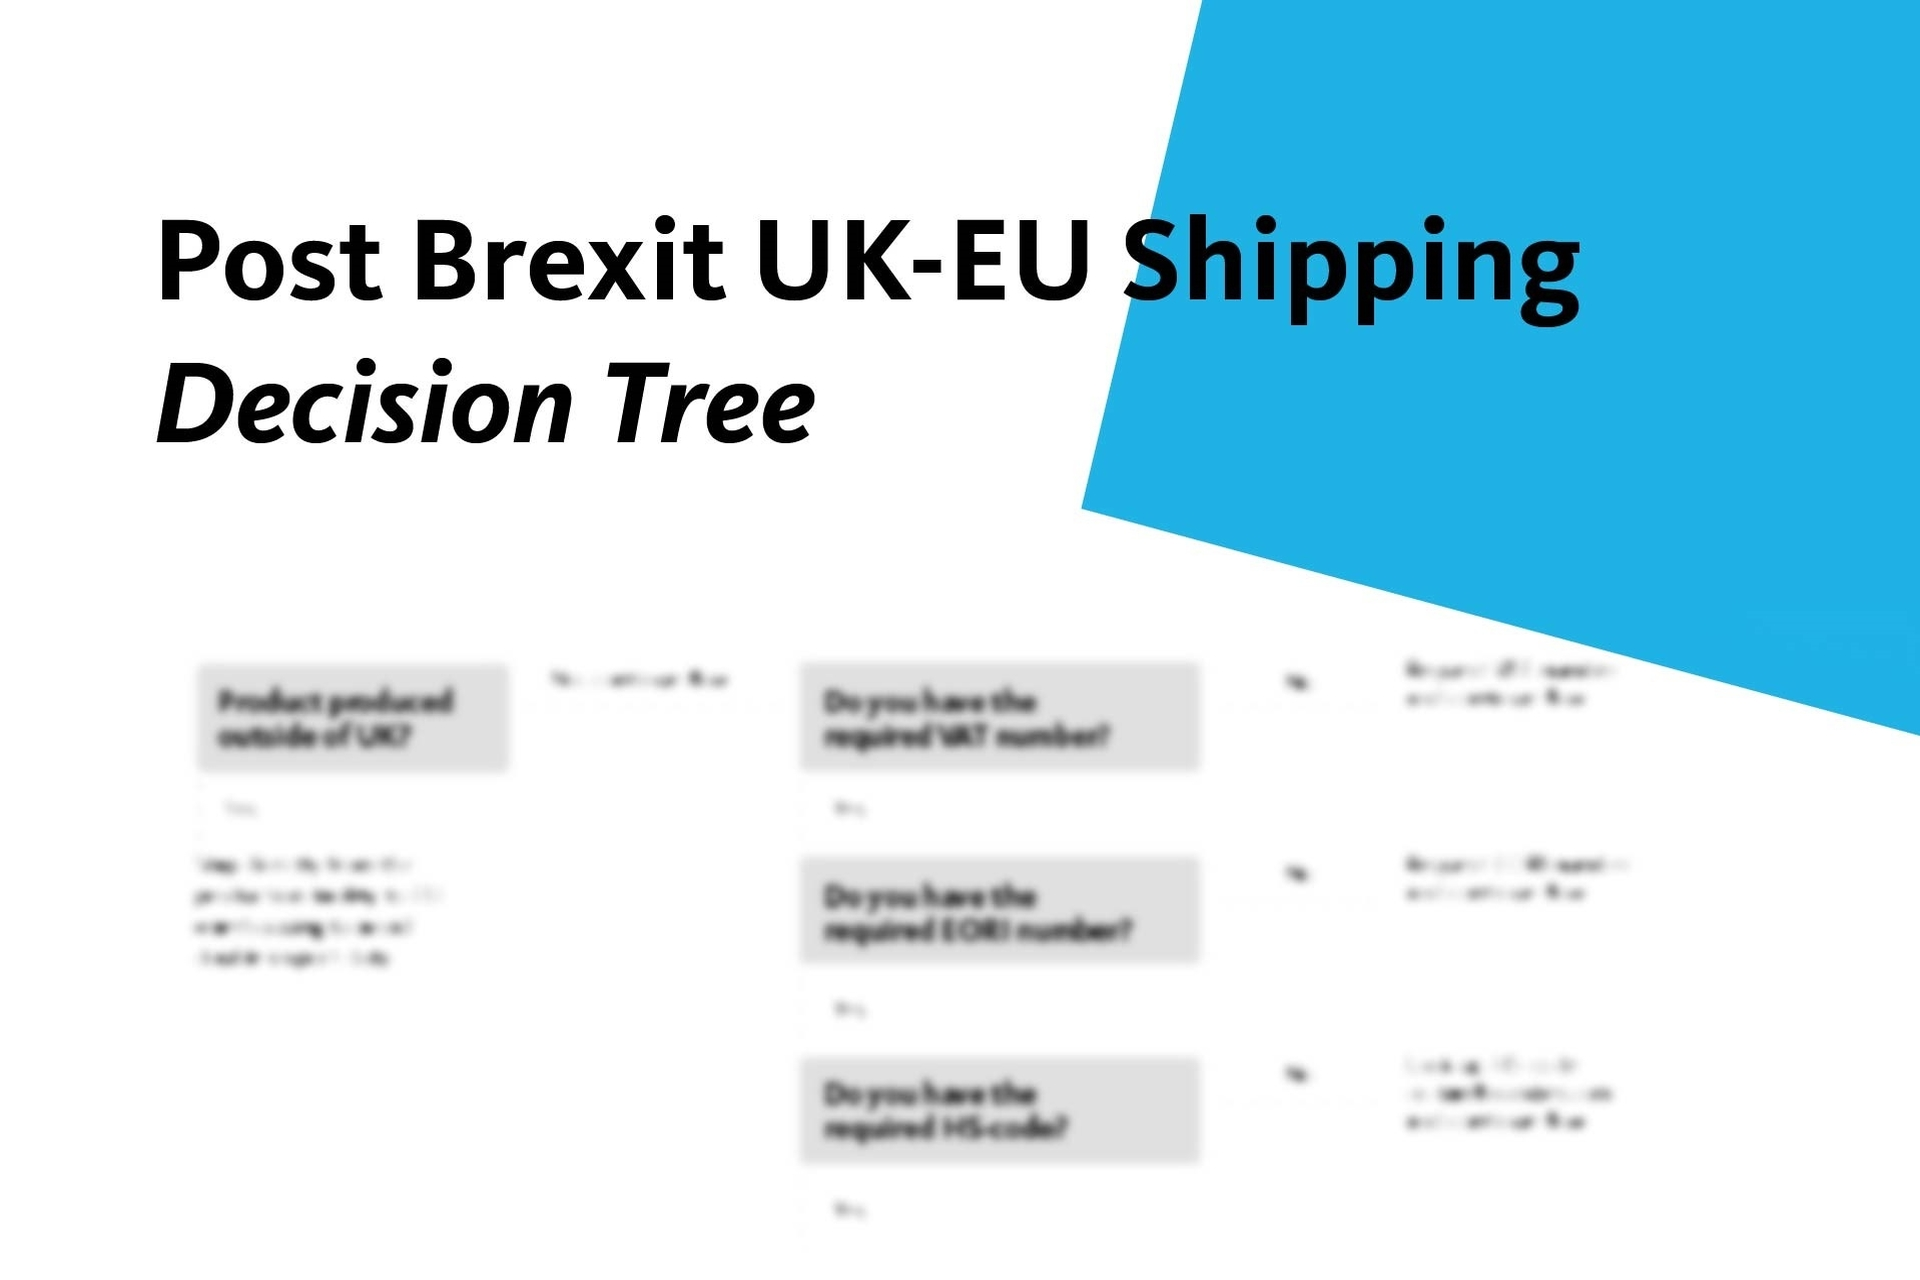 Practical Shipping Advice: Post Brexit UK-EU Shipping Decision Tree